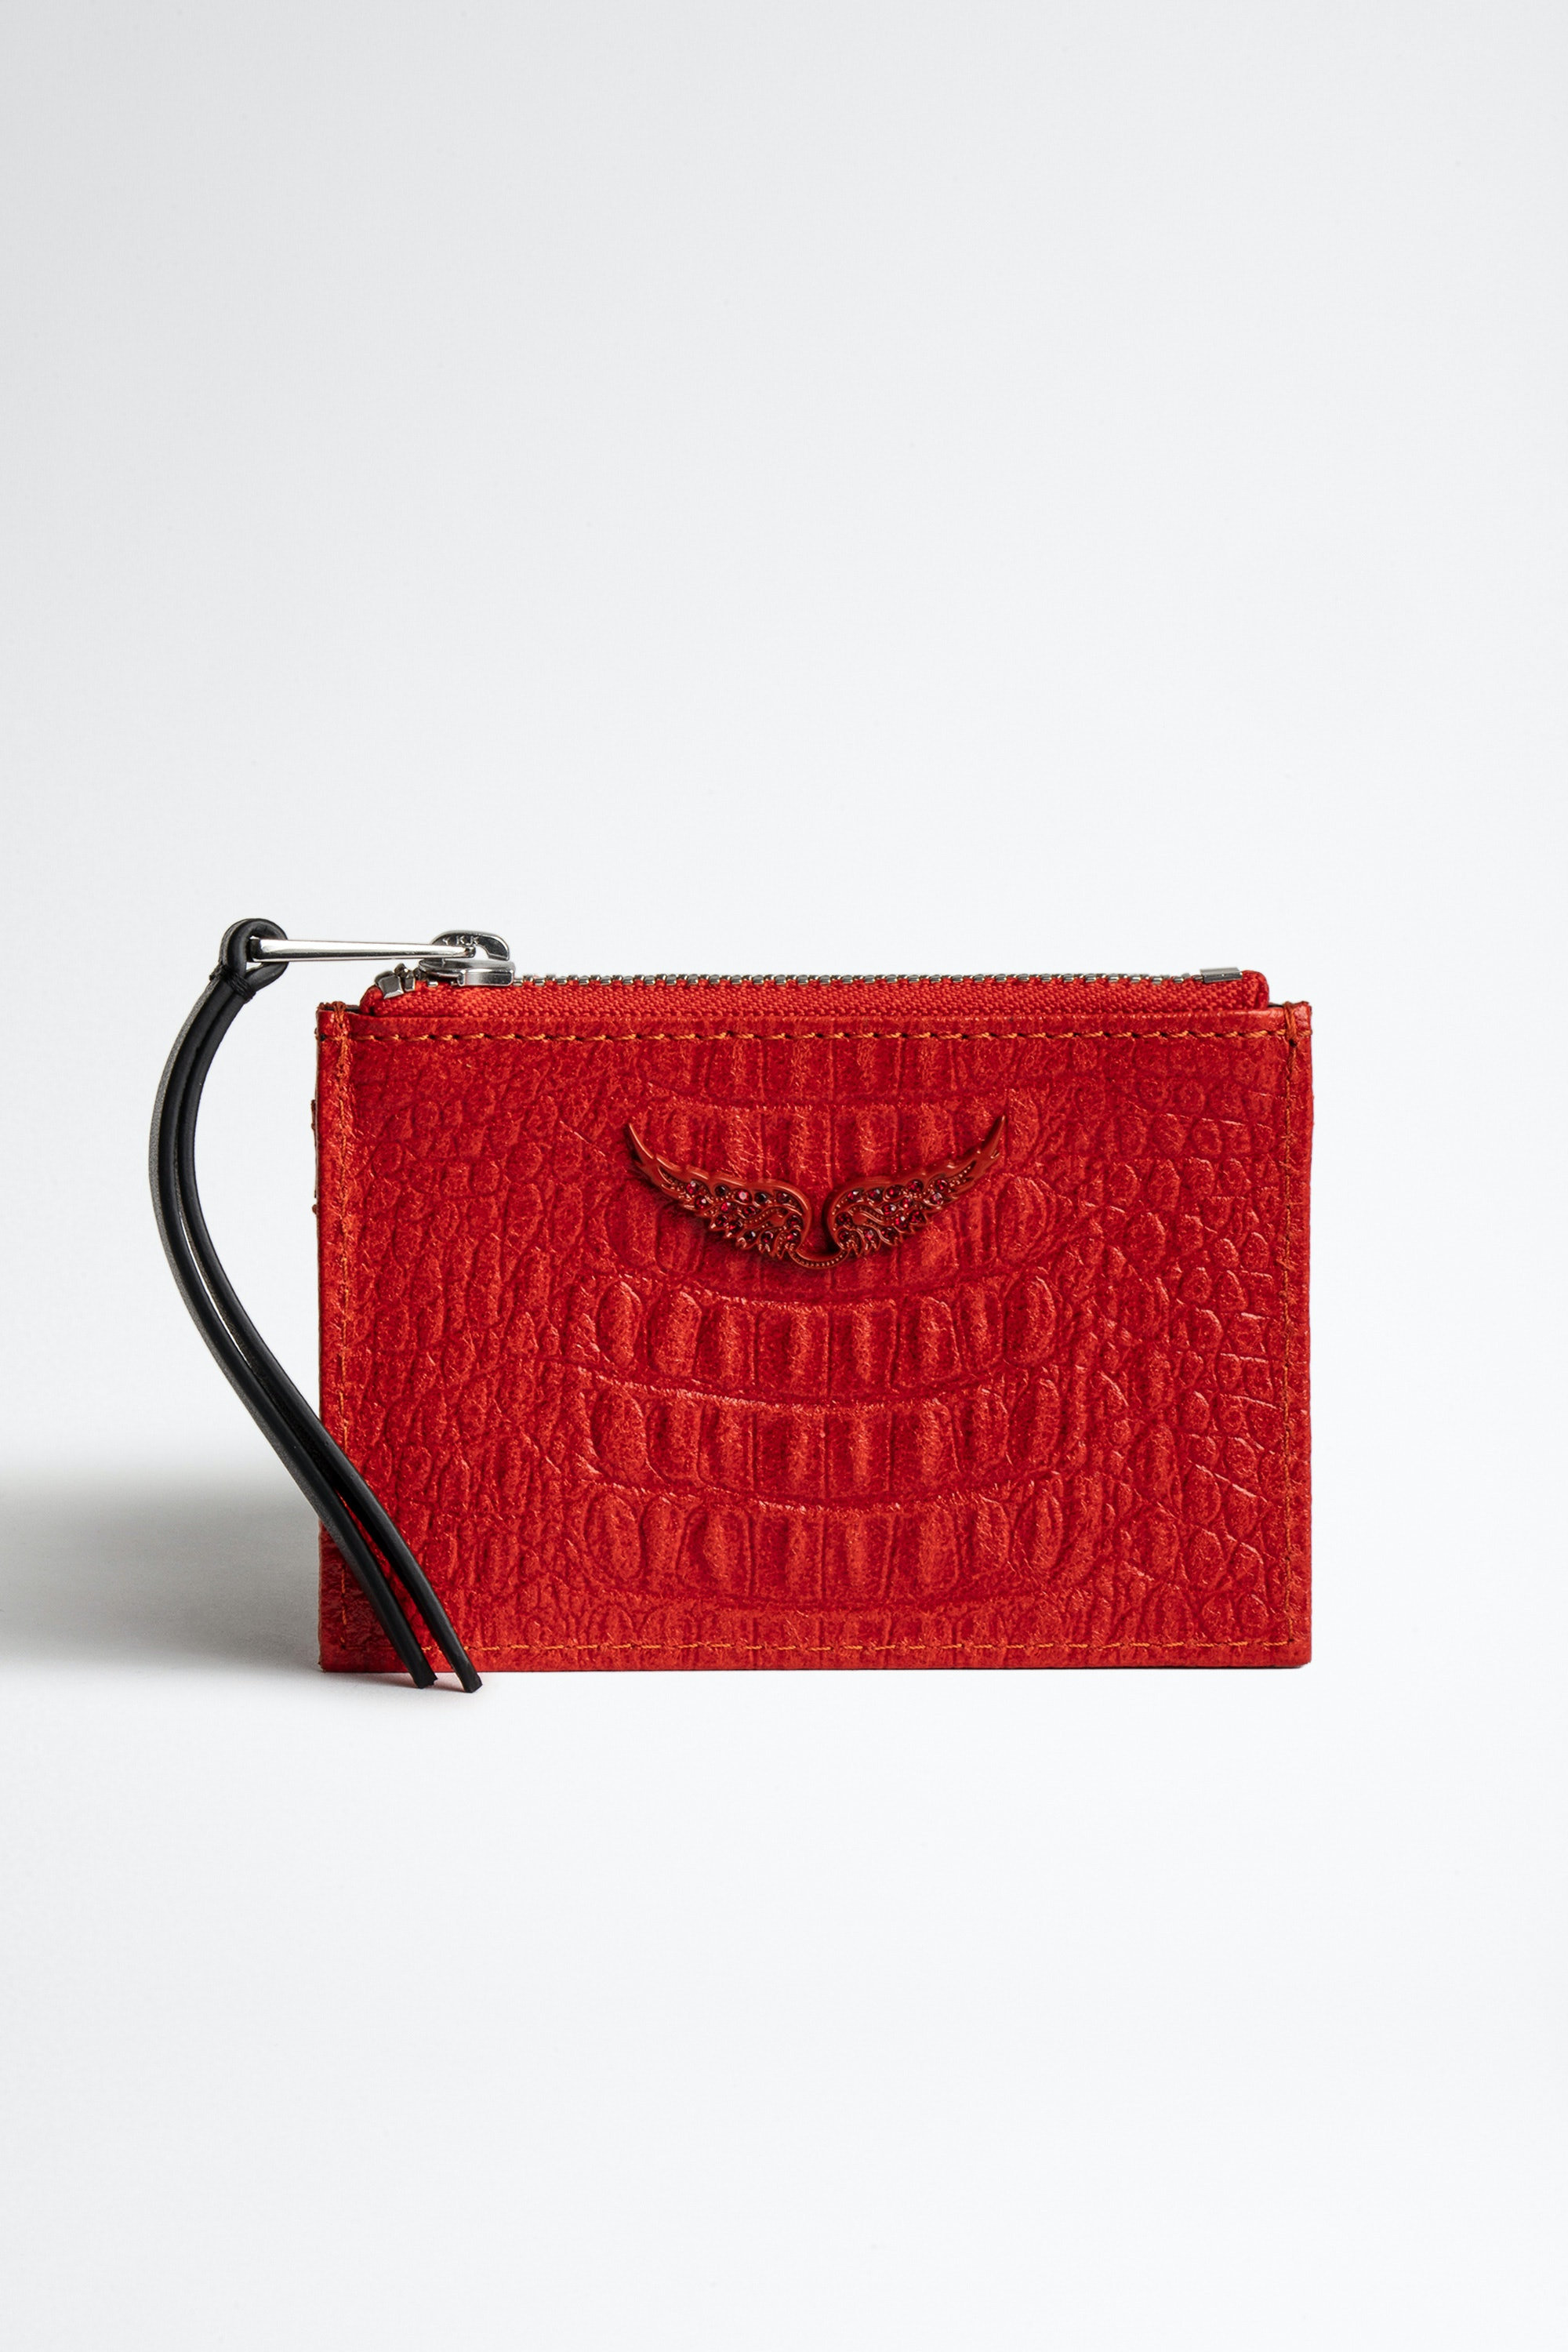 ZV Pass Embossed Tiny Croco Card Holder